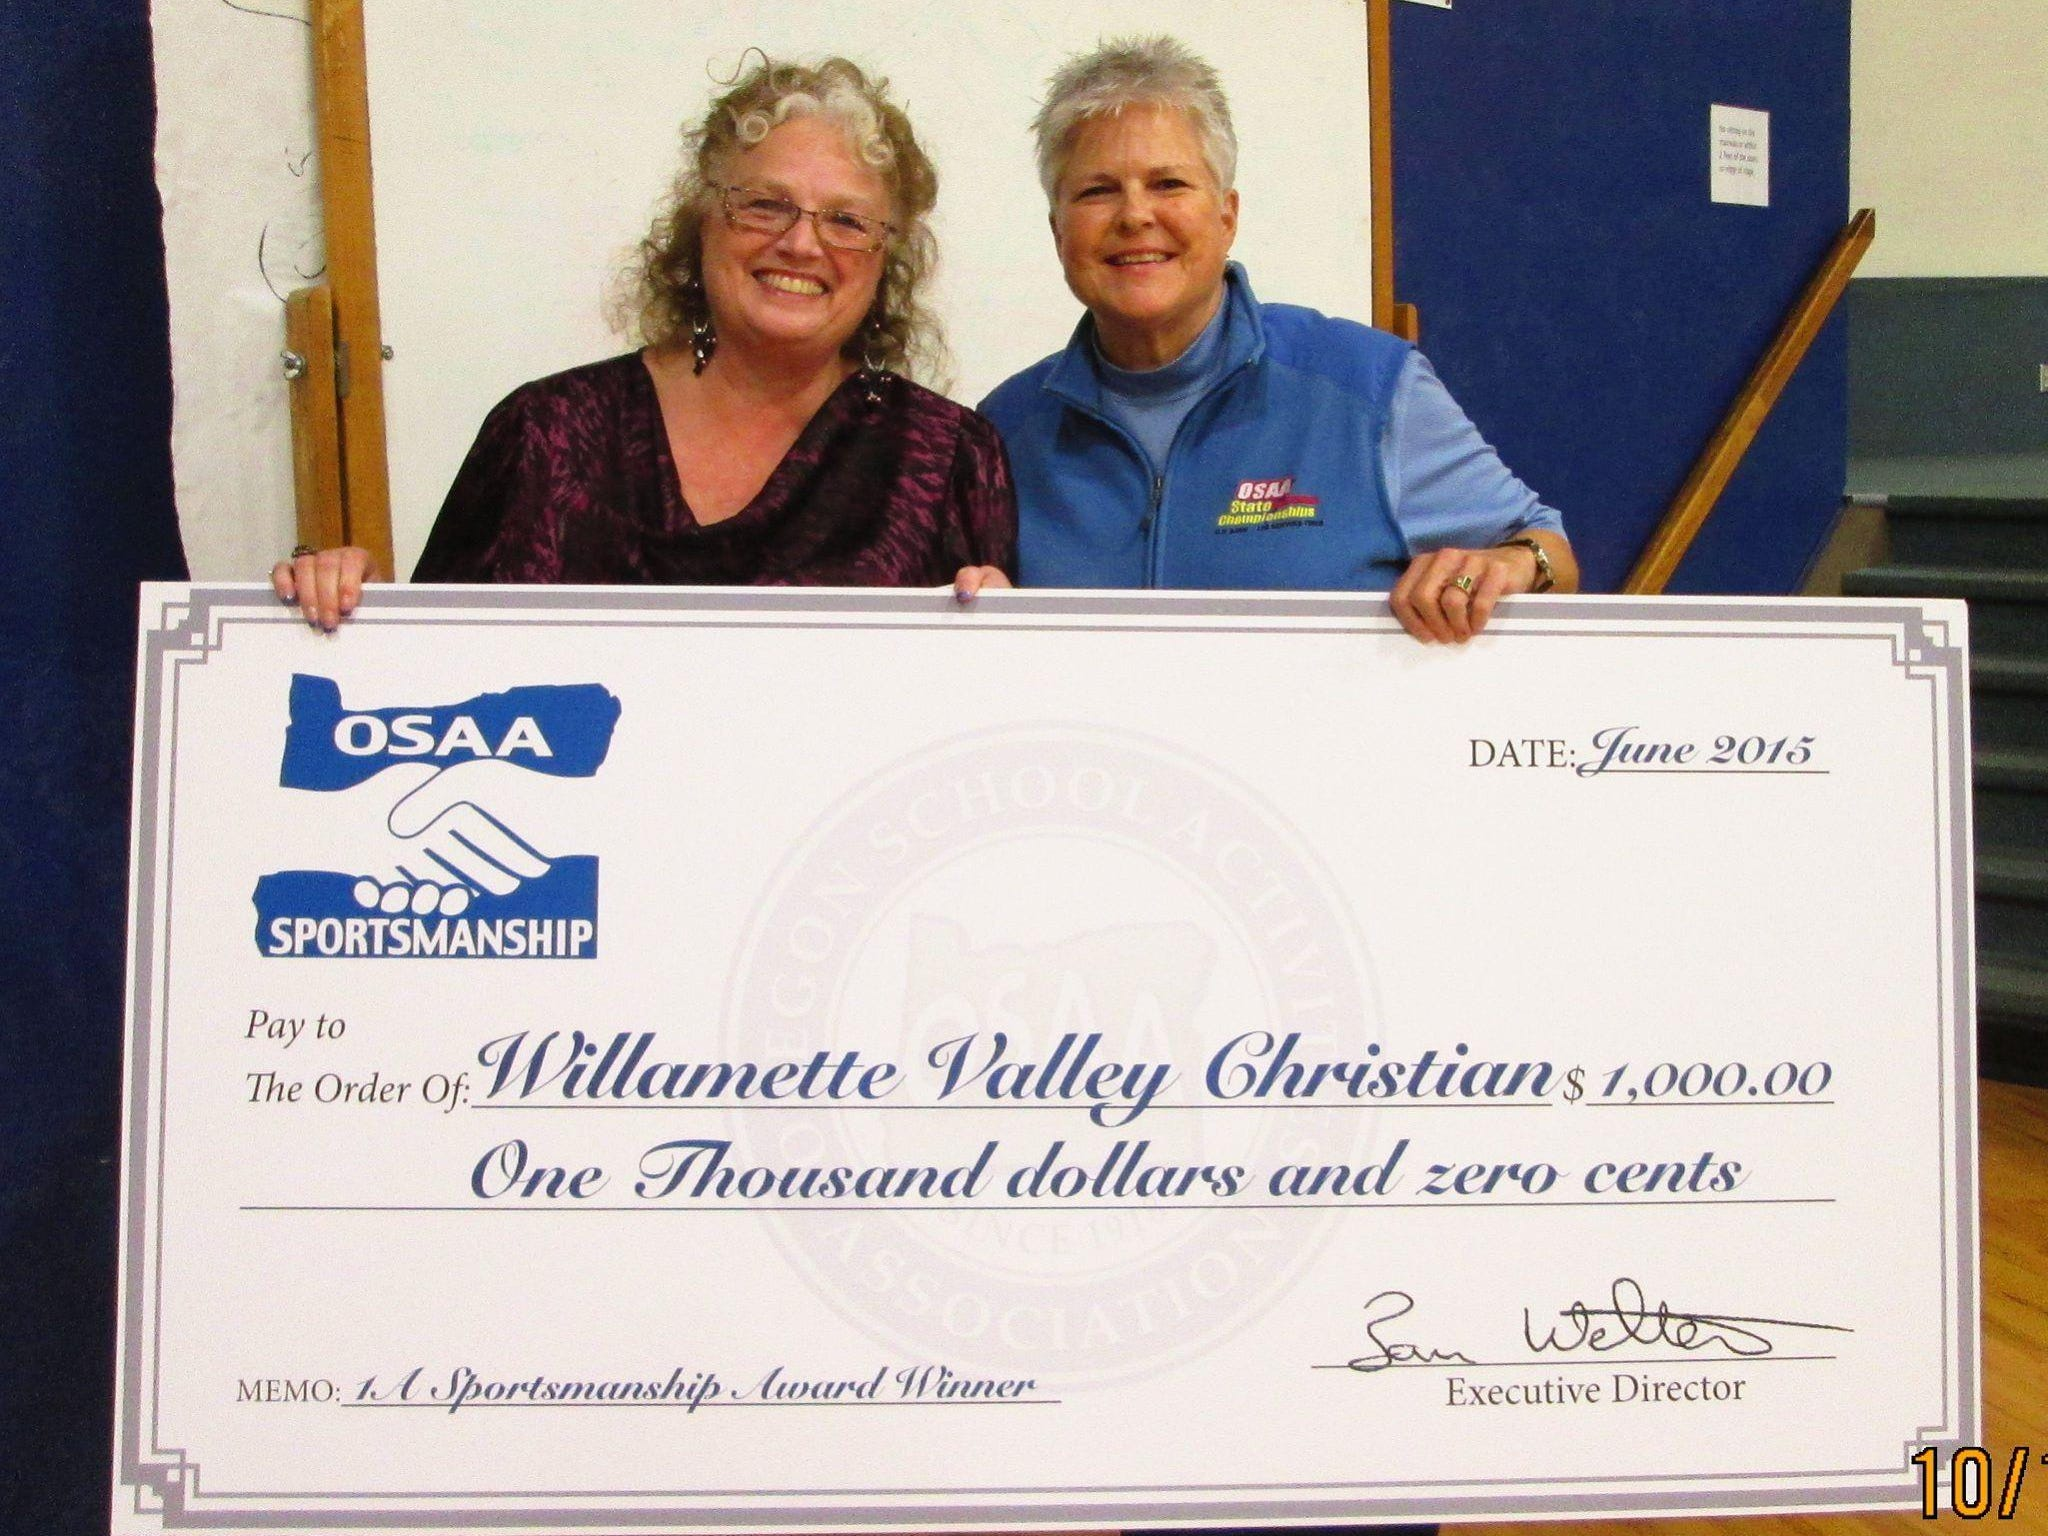 OSAA assistant executive director Cindy Simmons (right) presents a check to Willamette Valley Christian for winning the OSAA Sportsmanship Award.